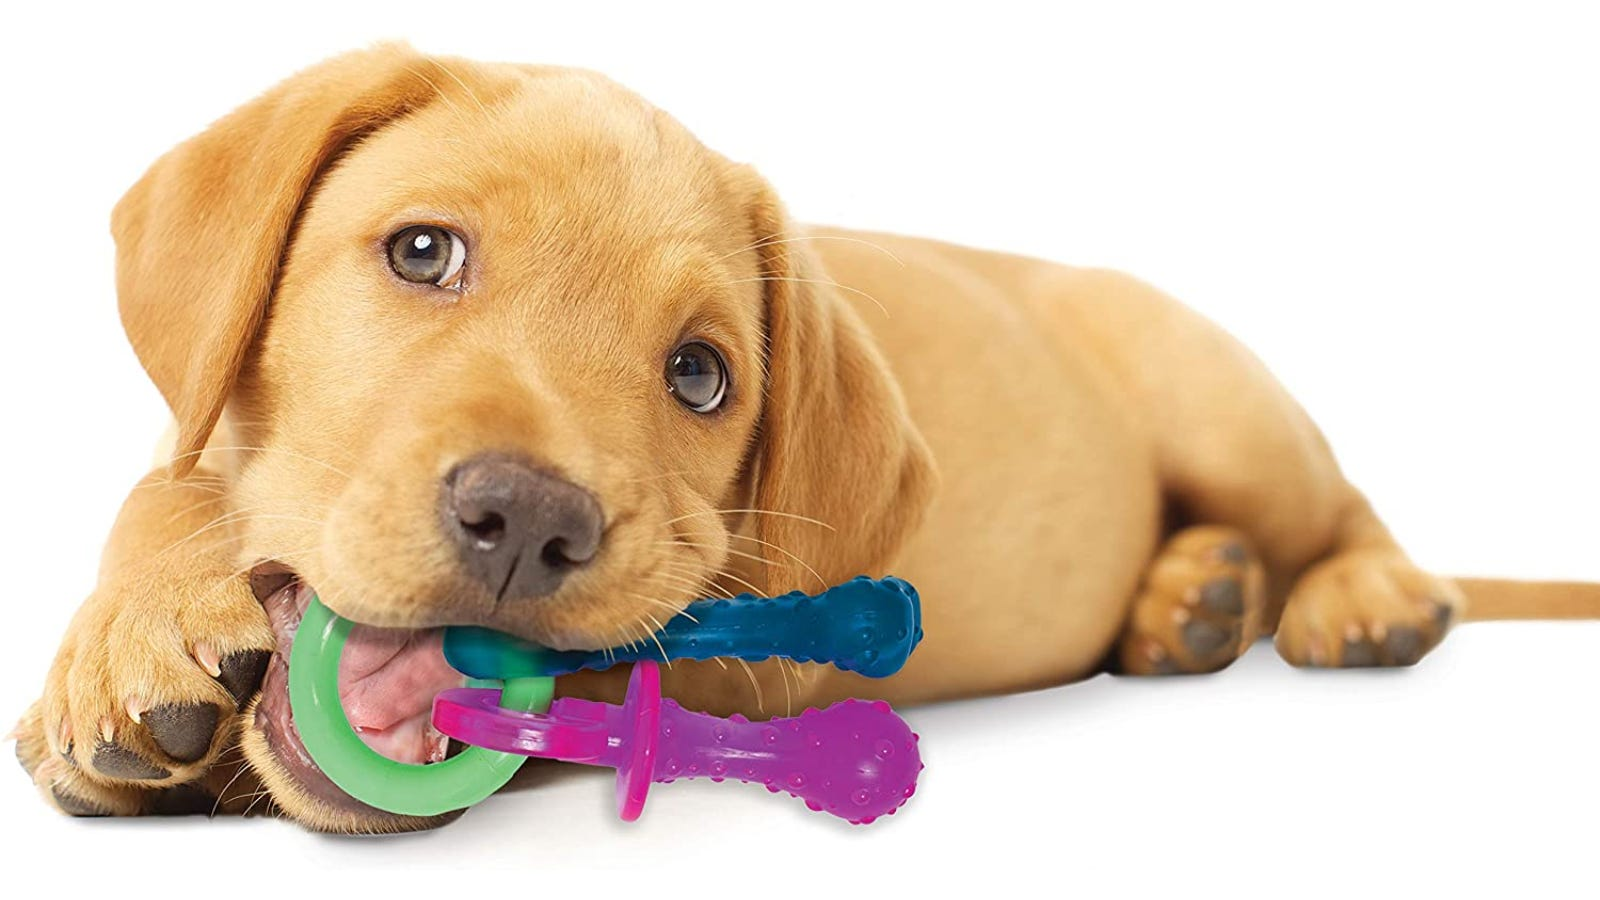 A brown puppy chewing on a toy that a main ring and two hanging attachments.